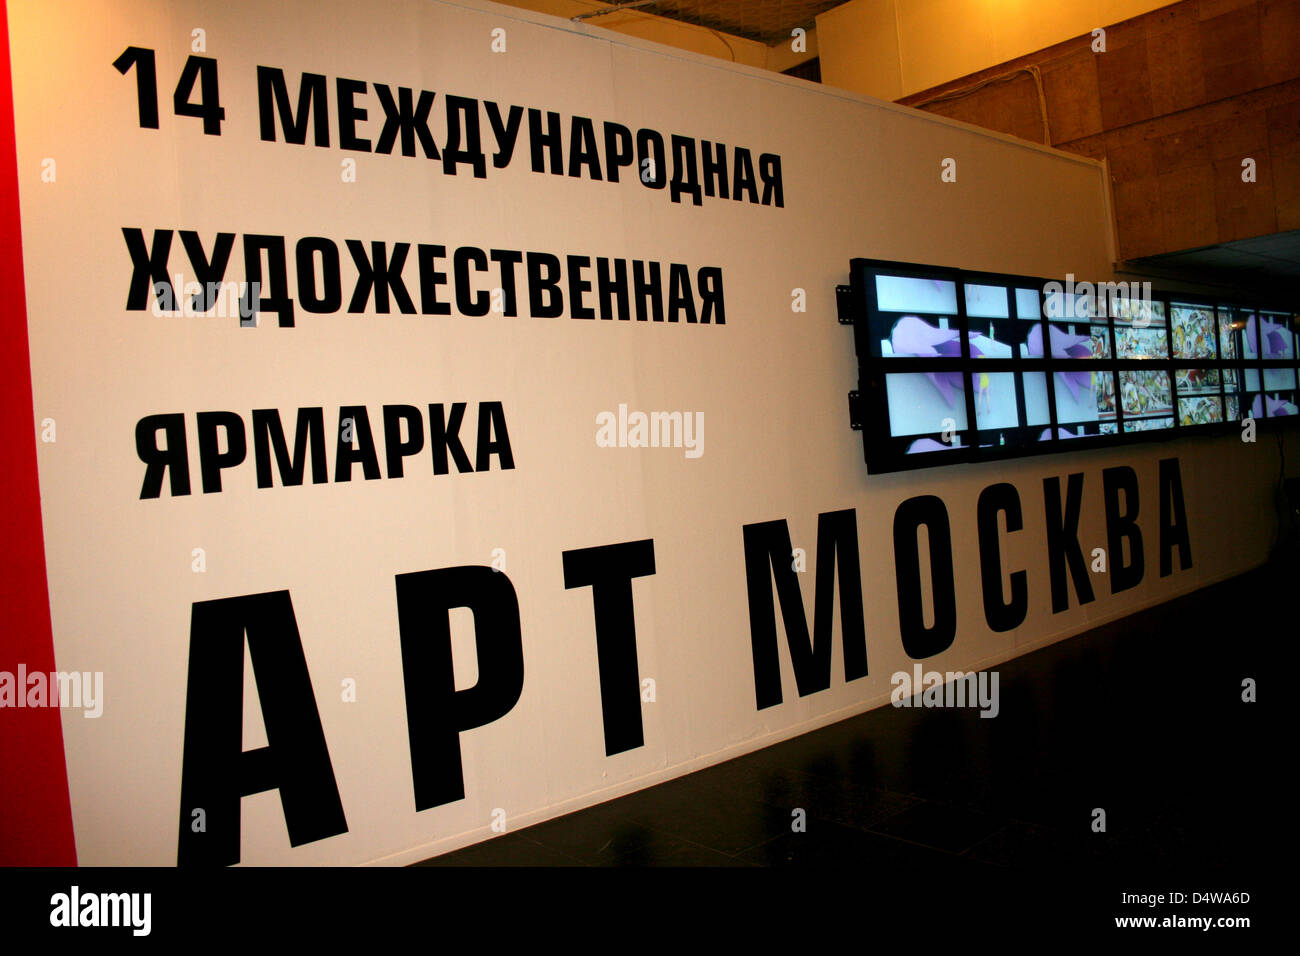 The poster for the 14th International fair Art Moscow hangs at the entrance to the Central House of the Arts in - Stock Image